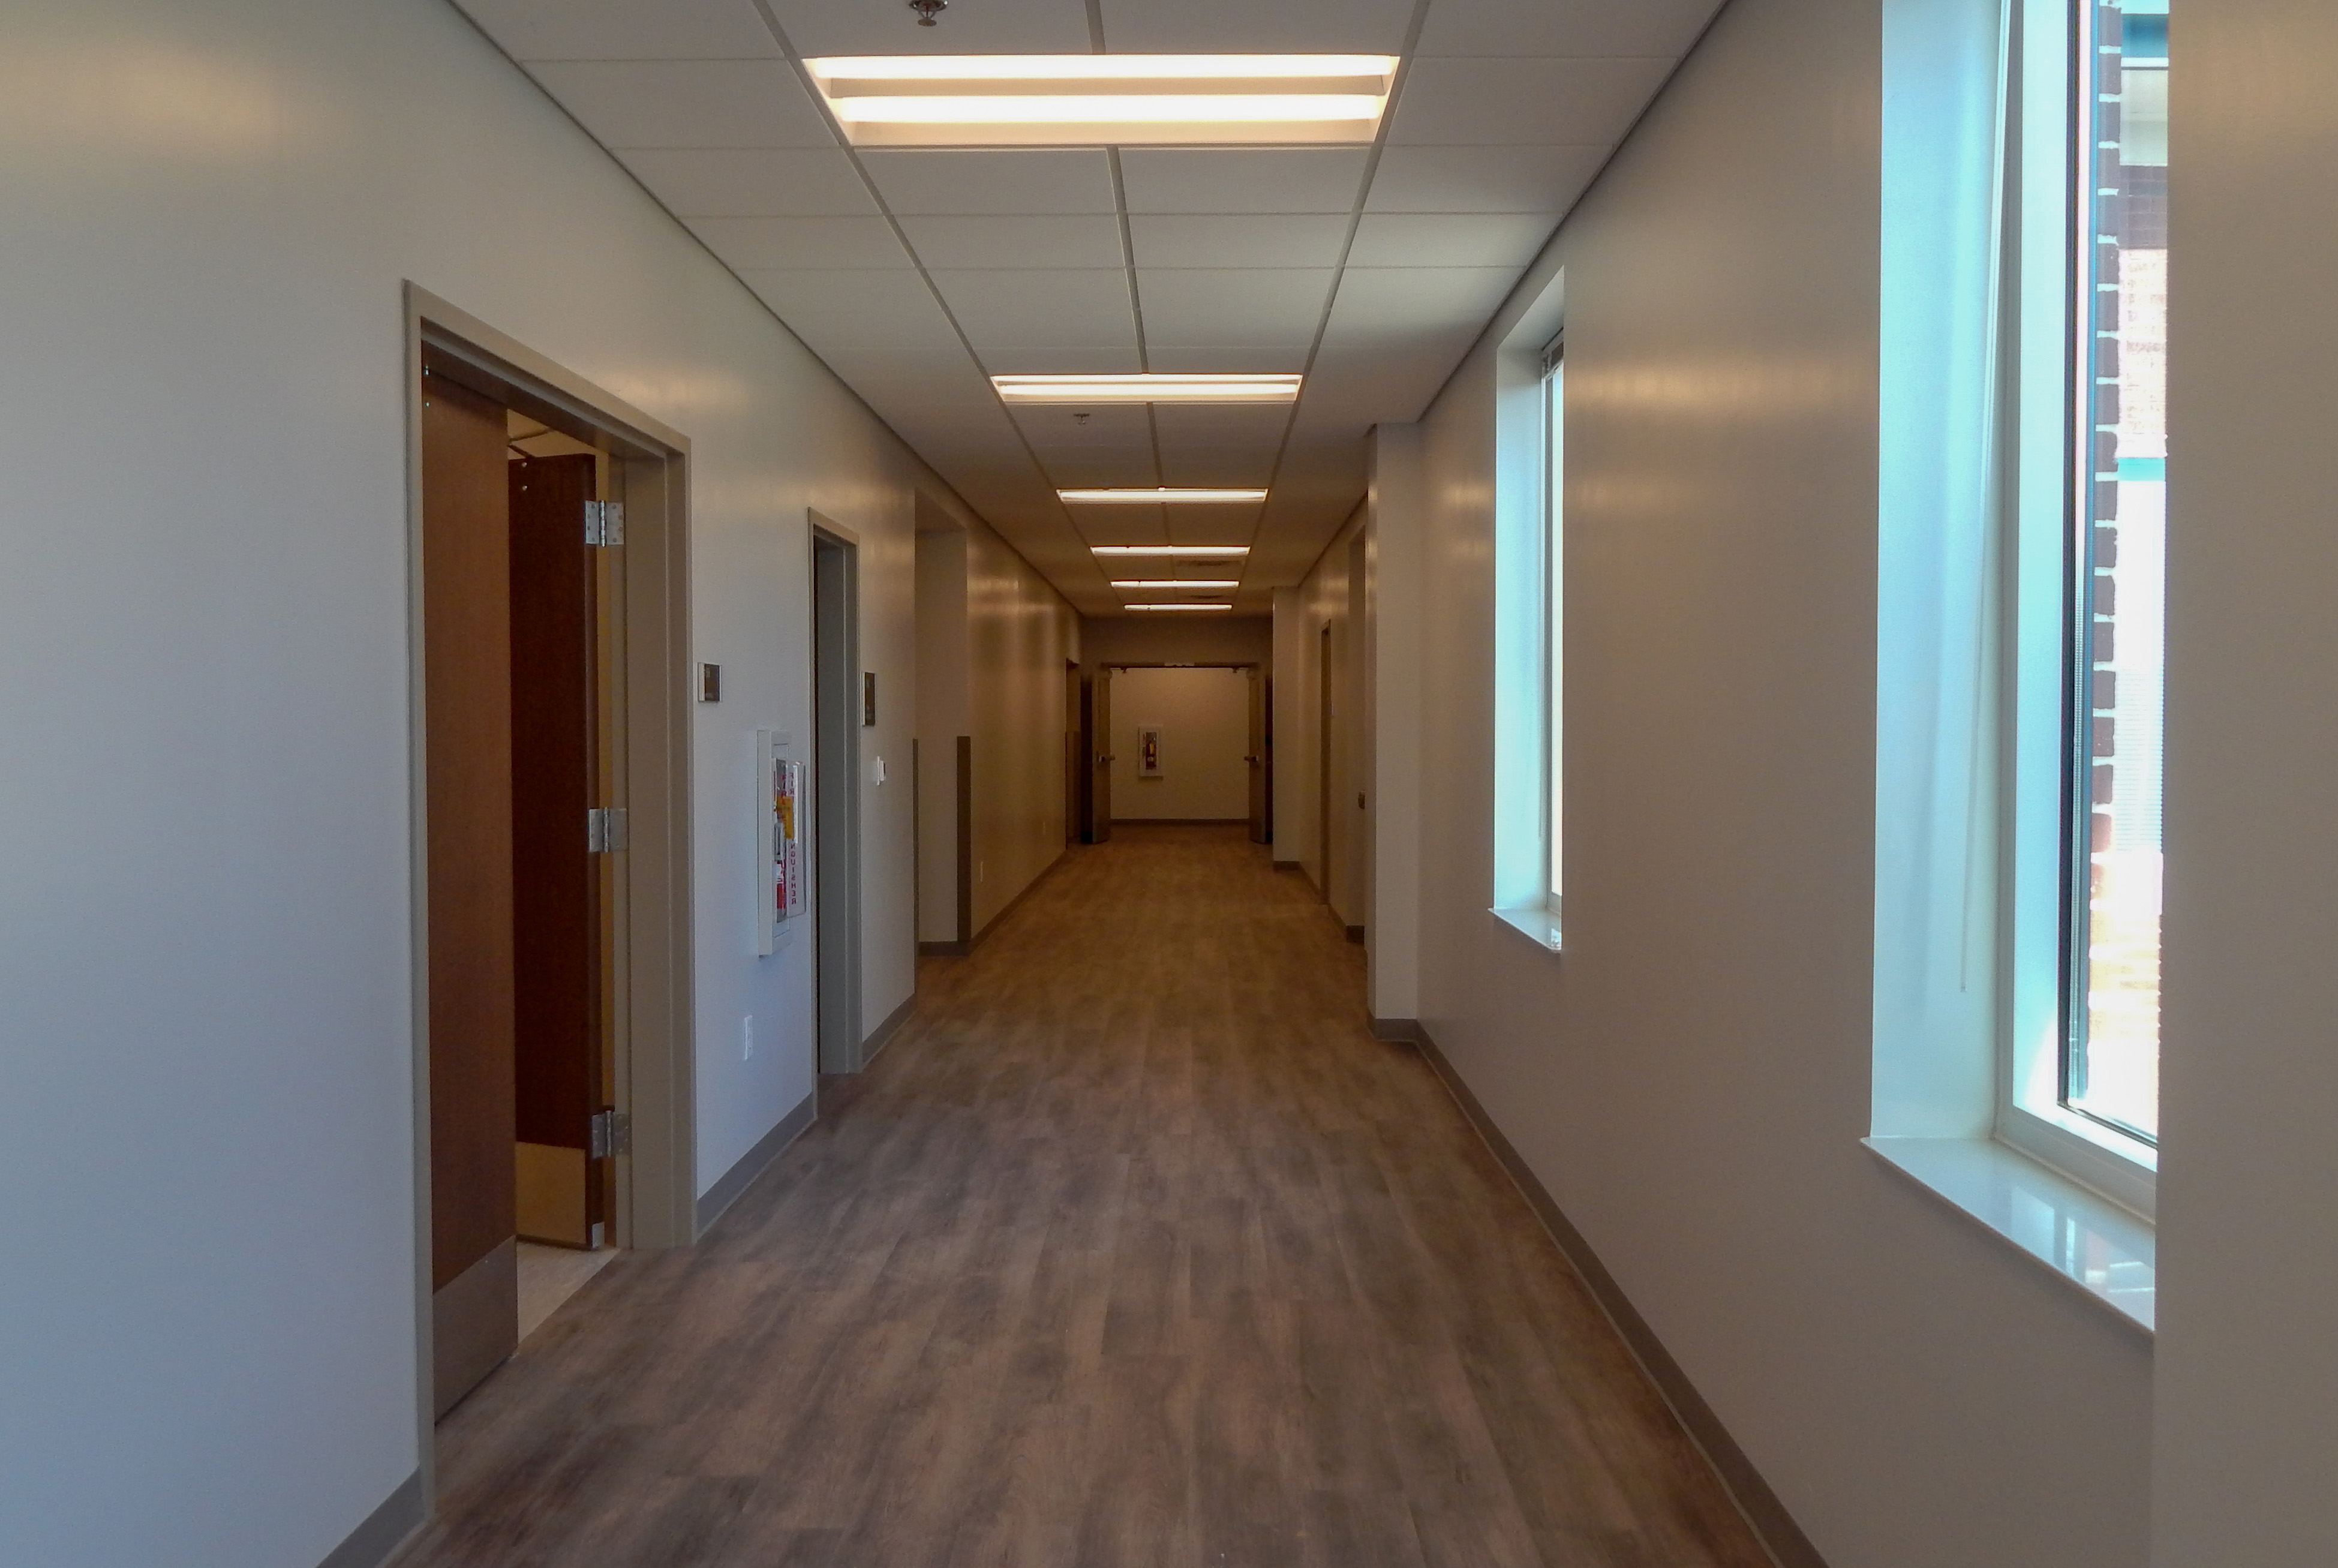 Exterior Hallways for GDOT District 6 Admin | Cooper & Company